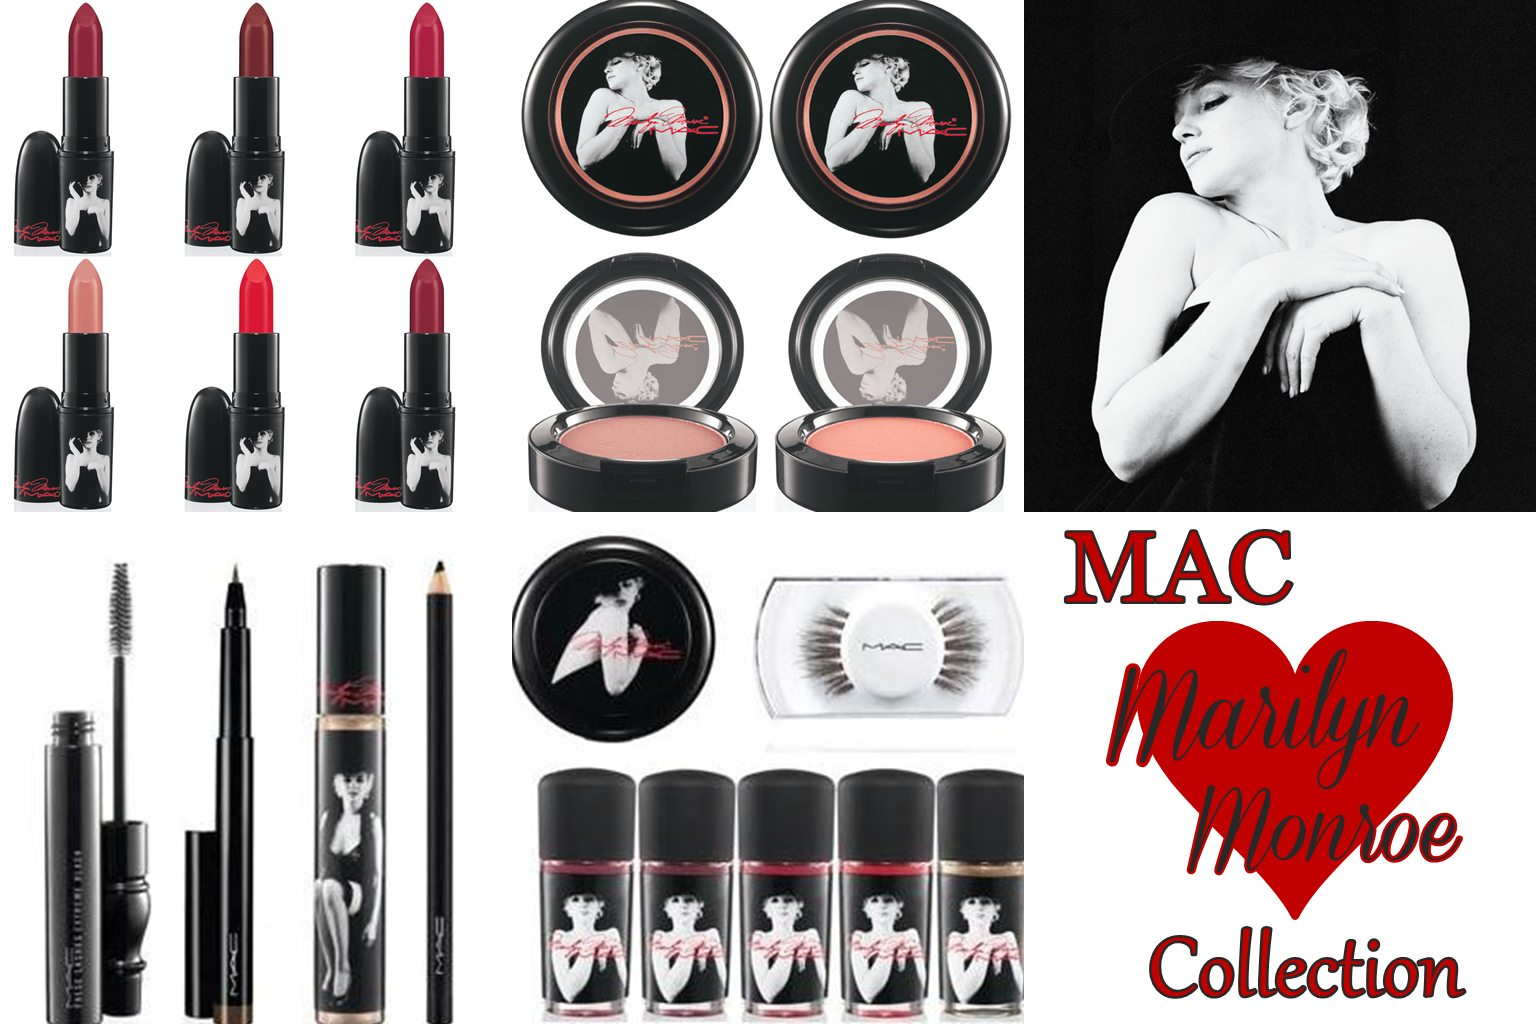 http://4.bp.blogspot.com/-EqOK-q9u7Dg/UGRJi76cvEI/AAAAAAAAMFA/8s4p6IlUIac/s1600/mac-marilyn-monroe-collection-products.jpg